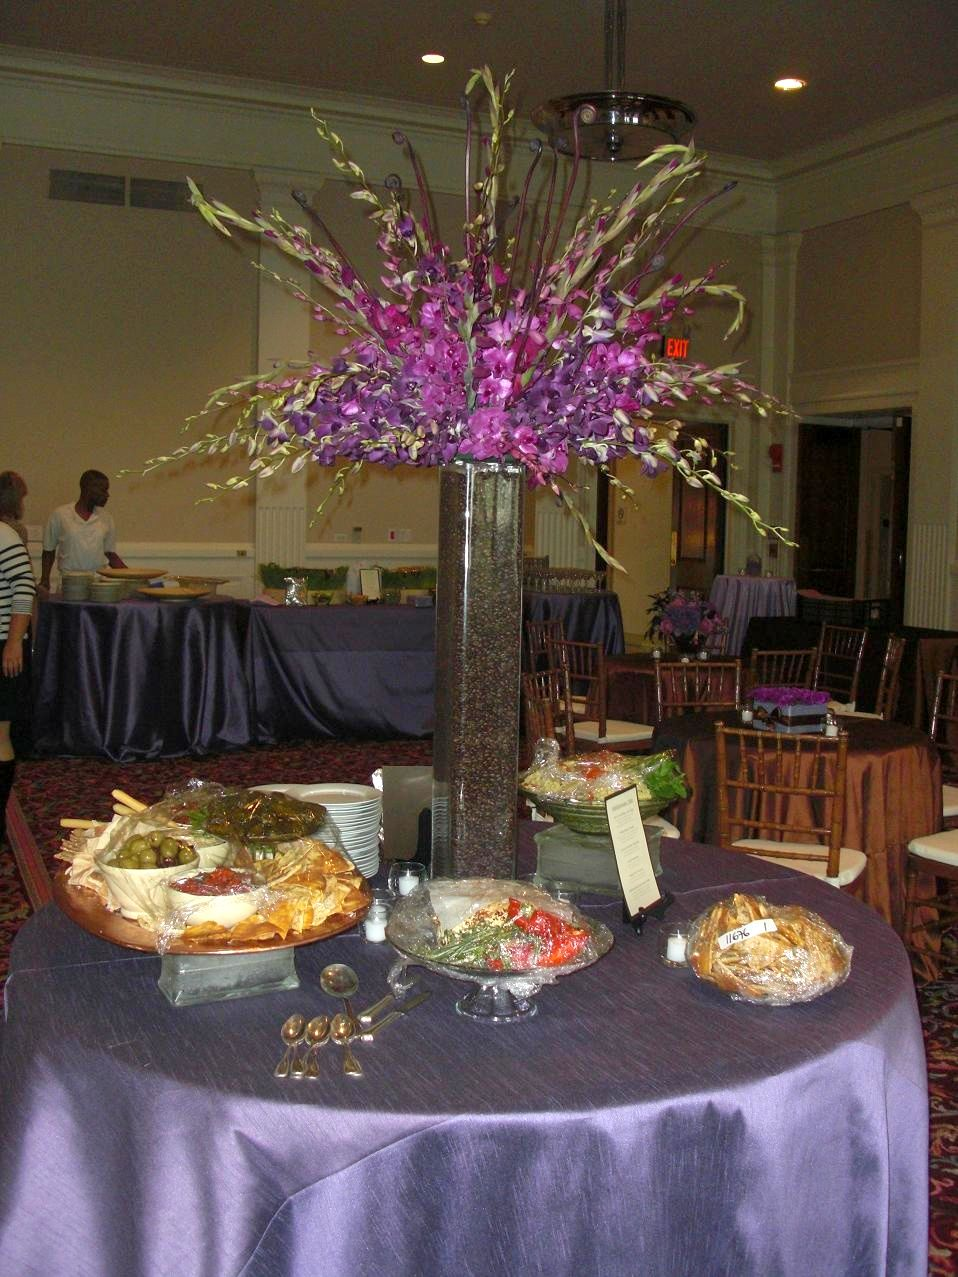 The best wedding decorations photos of tall wedding for Floral arrangements for wedding reception centerpieces